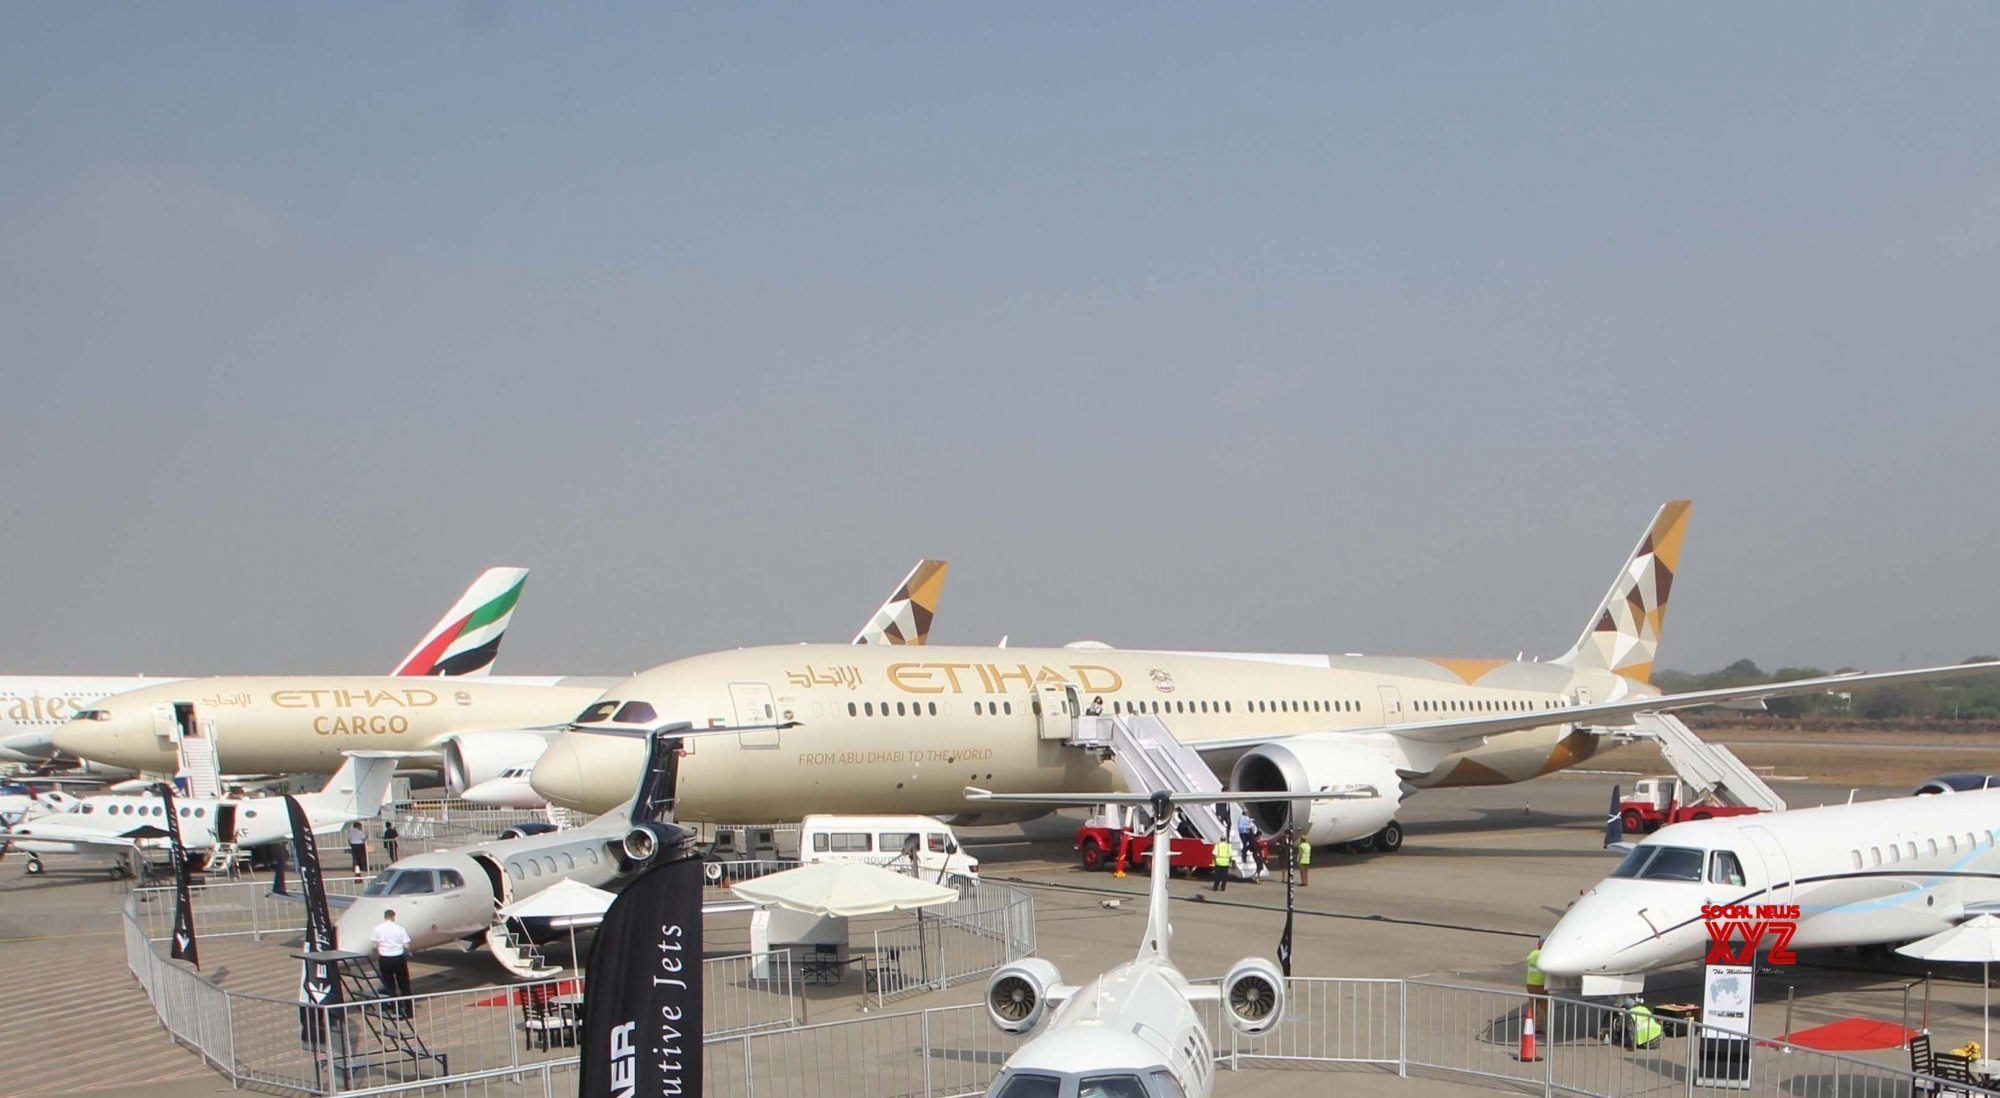 Kerala's IBS to provide IT support to Etihad Airways